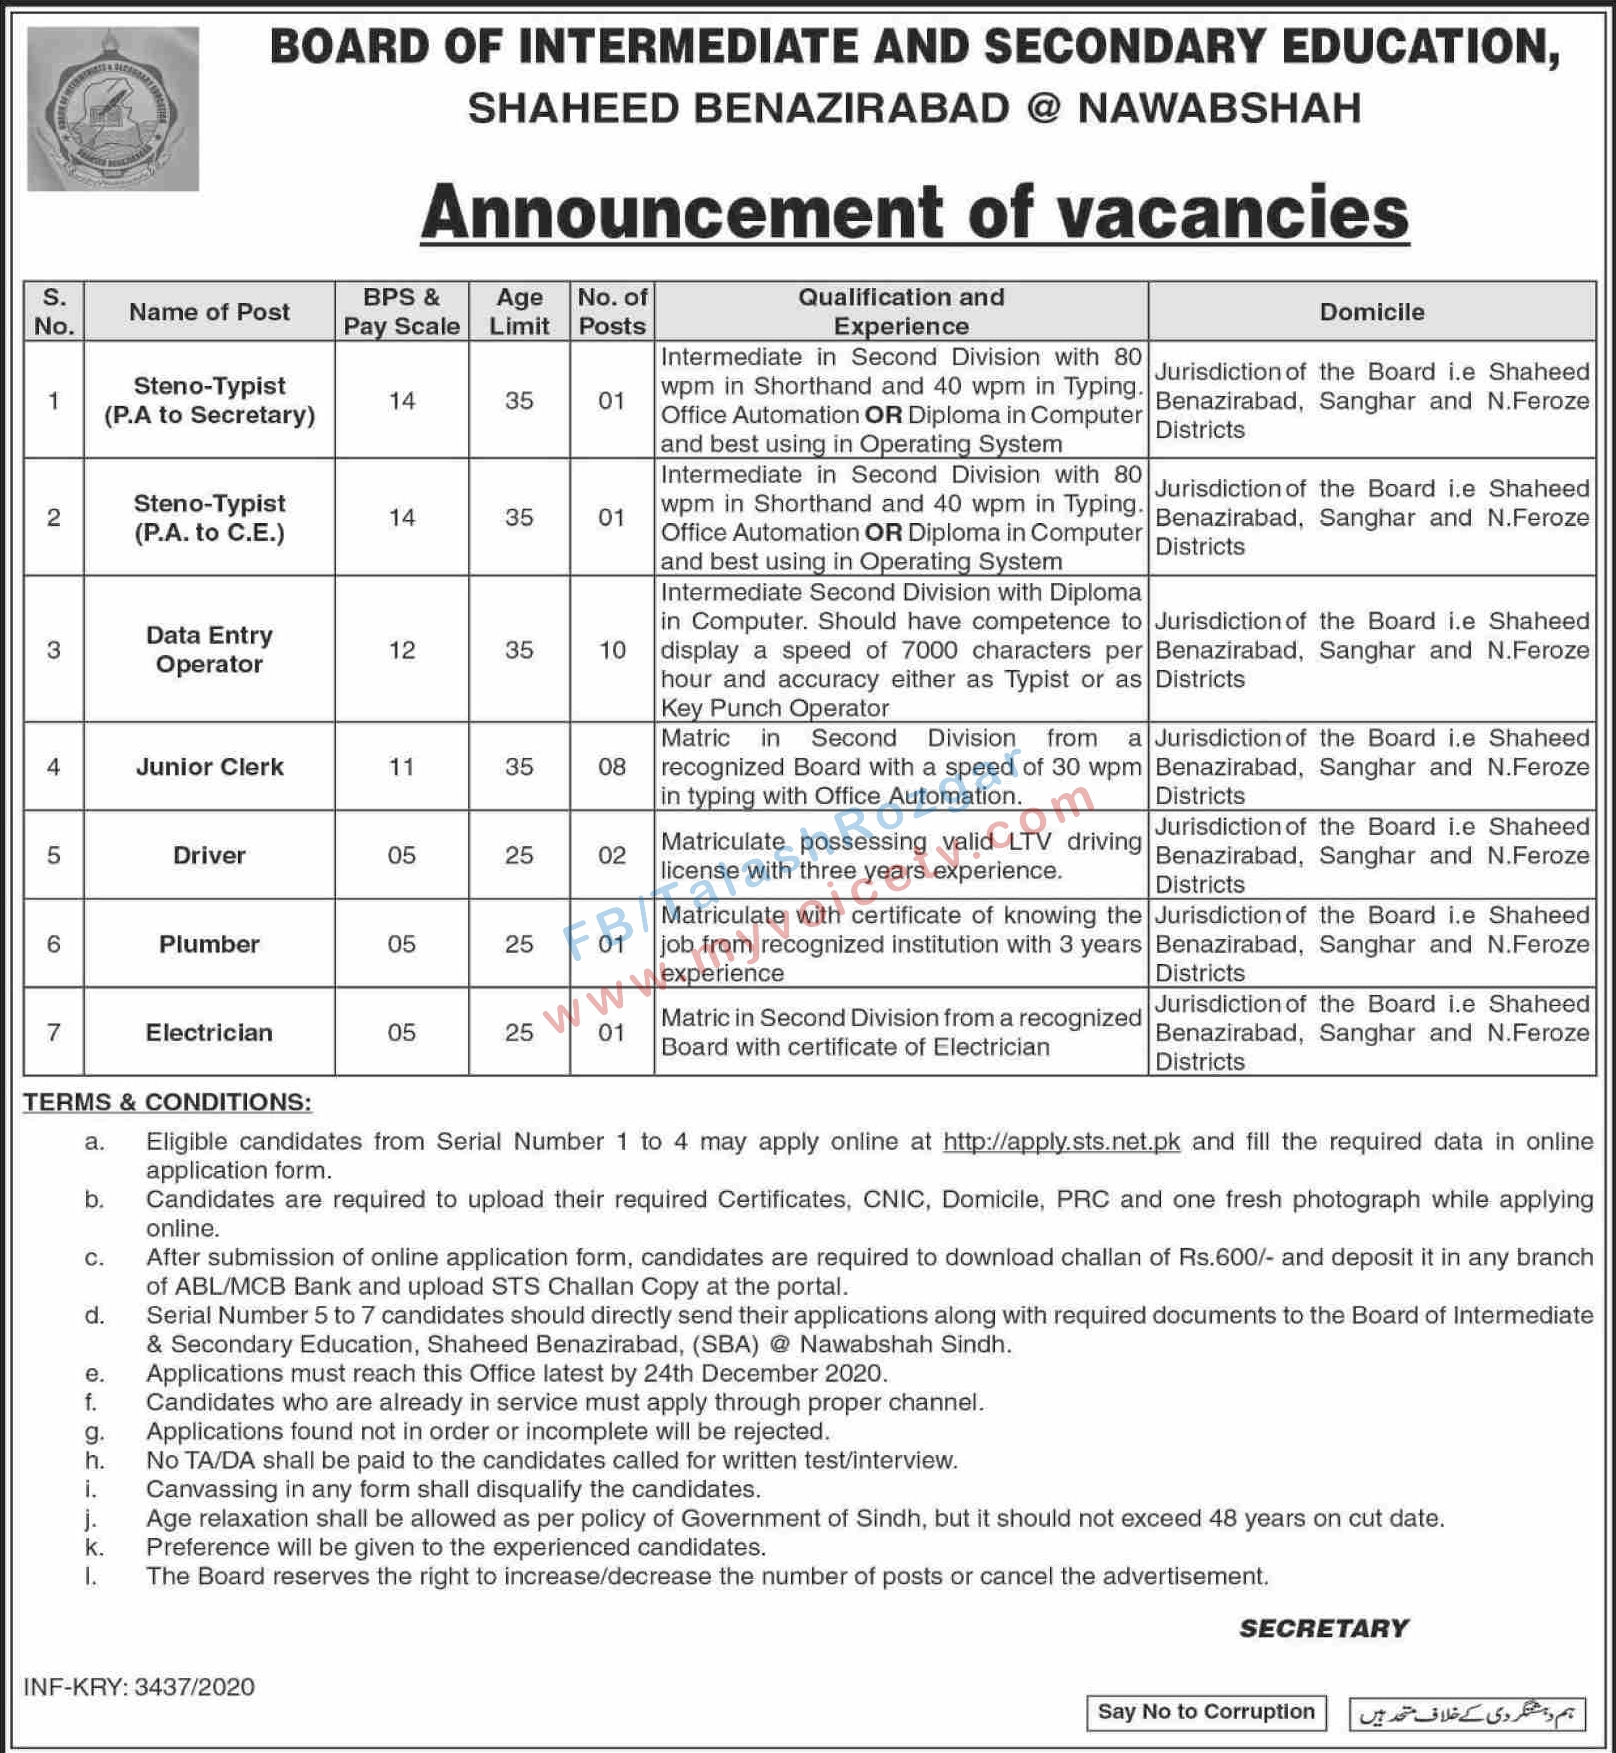 👉 #Jobs - #Career_Opportunities - at Boad of Intermediate and Secondary Education Nawab Shah  #Jobs Laste date 24 December 2020